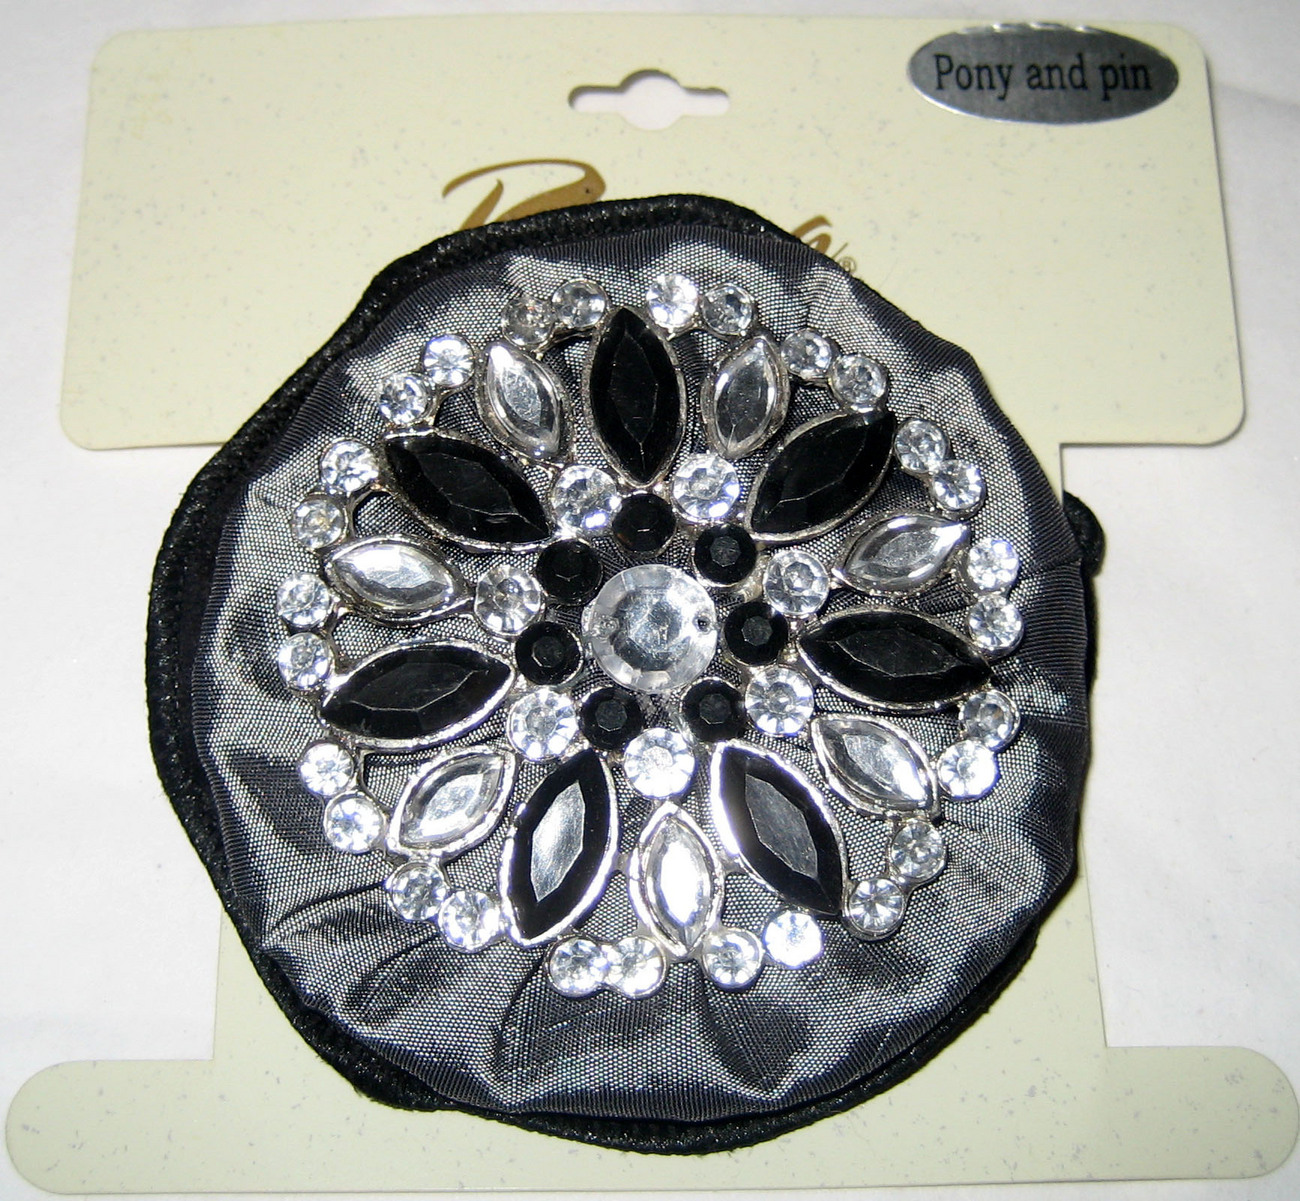 Riviera ponytail holder and/or brooch pin black grey silver crystal trim NEW $11 Riviera